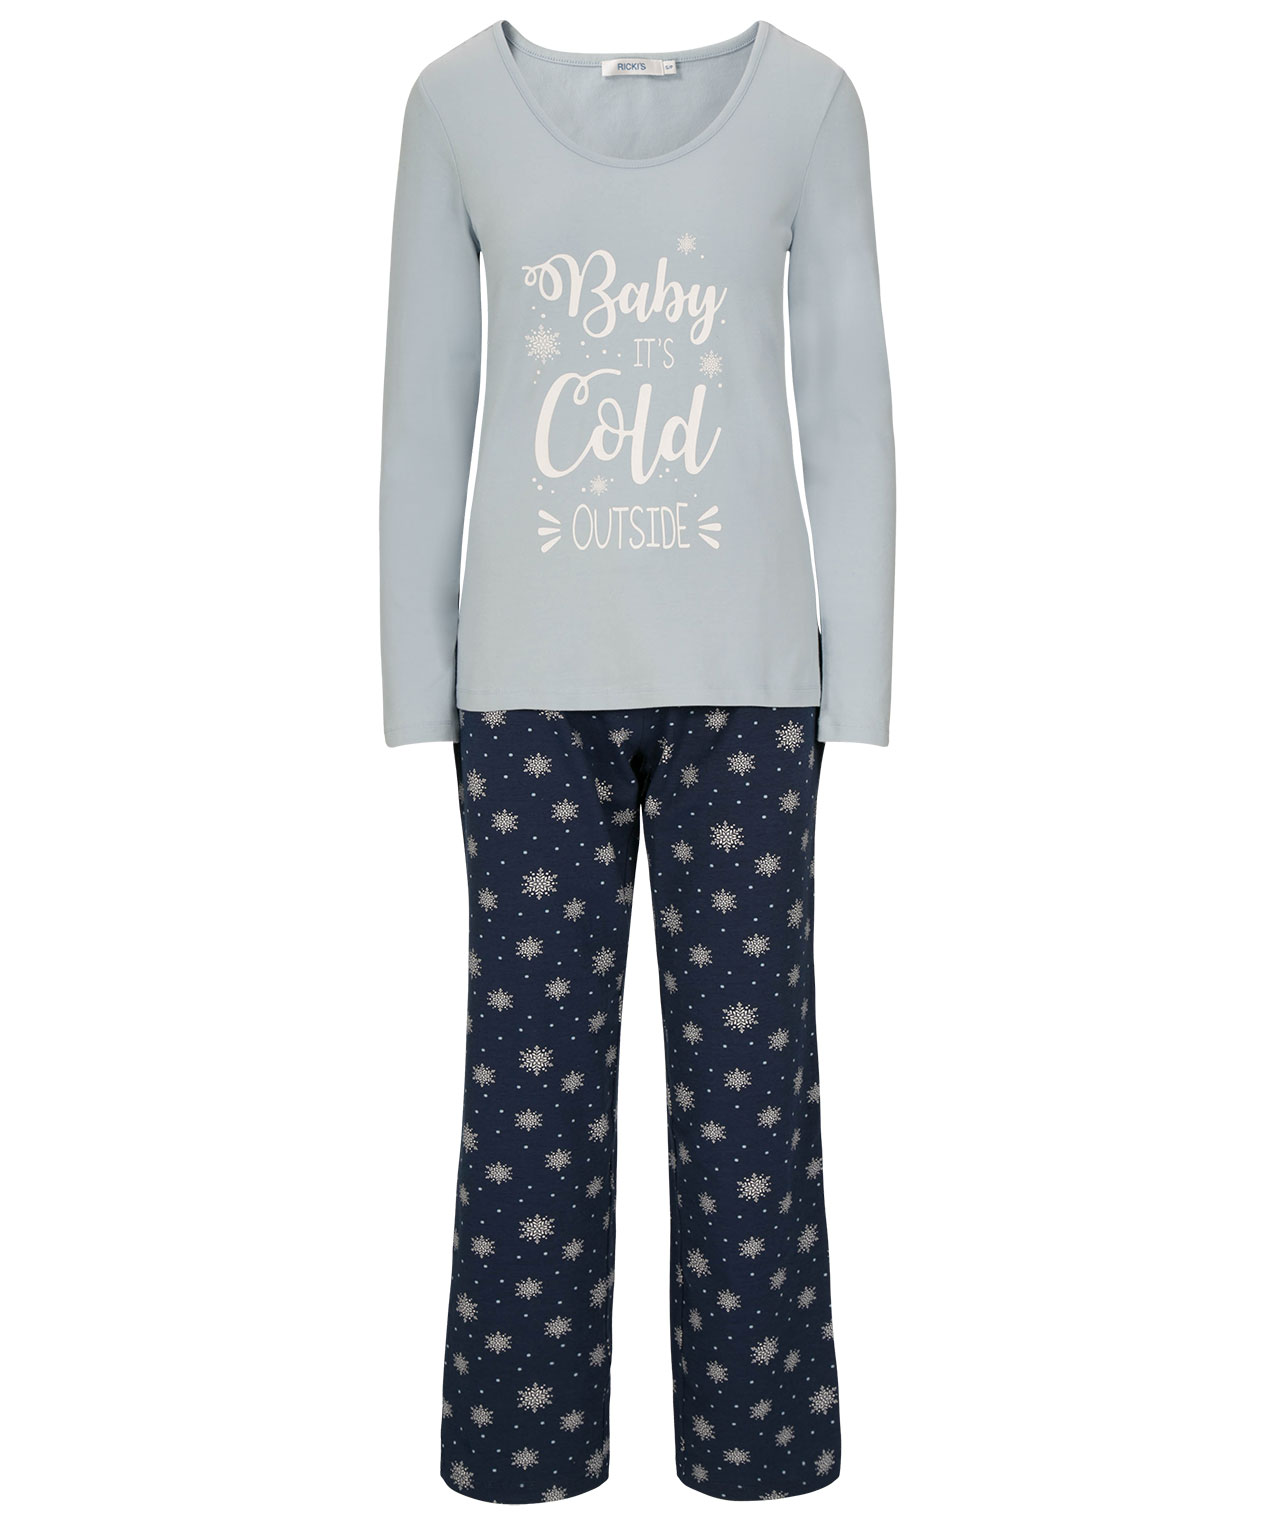 b7ad7ae02b32d Snowflake Pajama Set, Light Blue/Deep Sapphire, hi-res